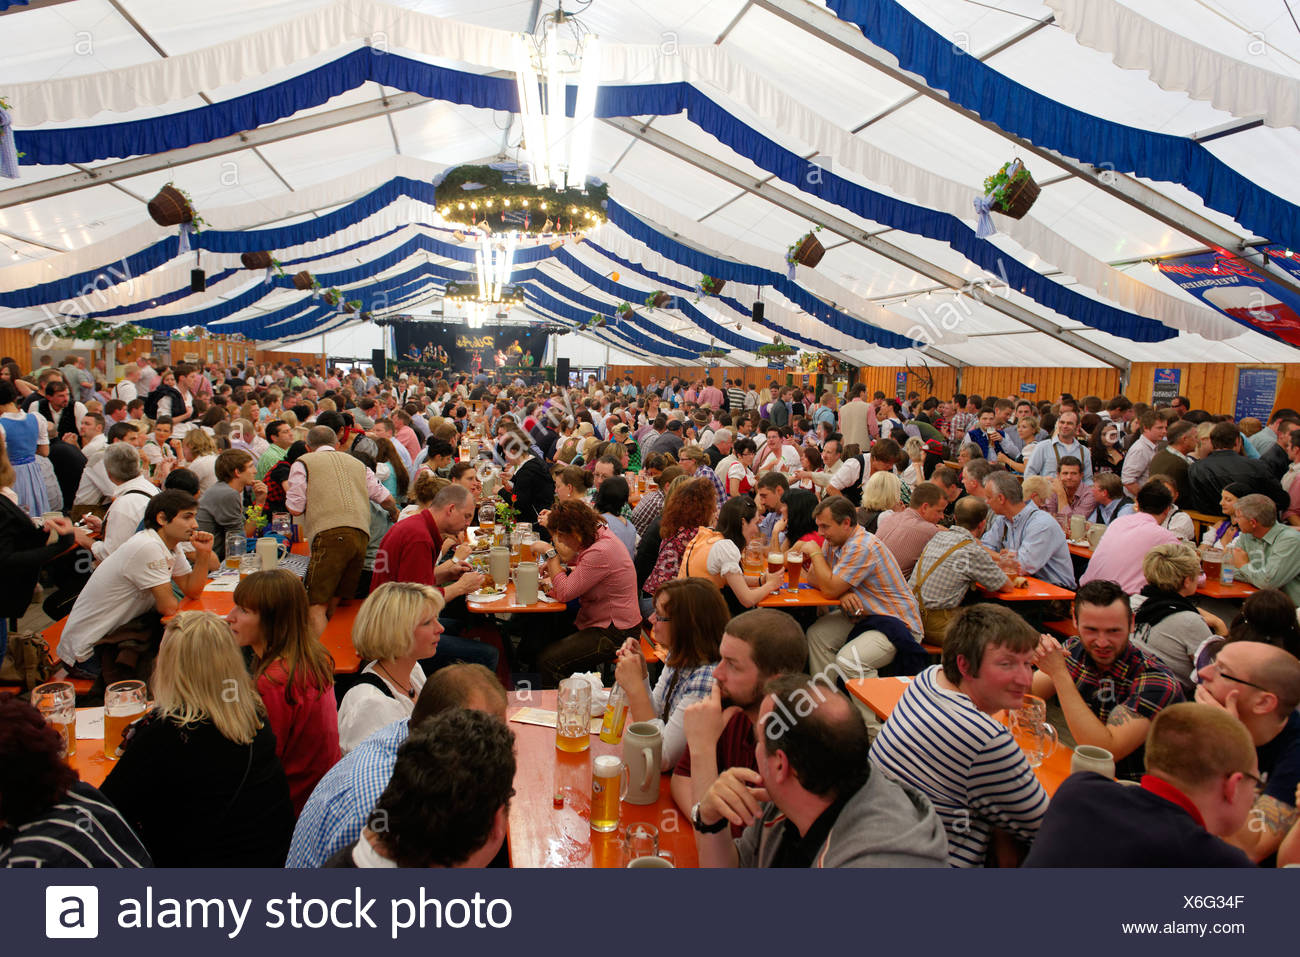 Beer hall, Altoettinger Hofdult, folk festival, Altoetting, Upper Bavaria, Bavaria - Stock Image